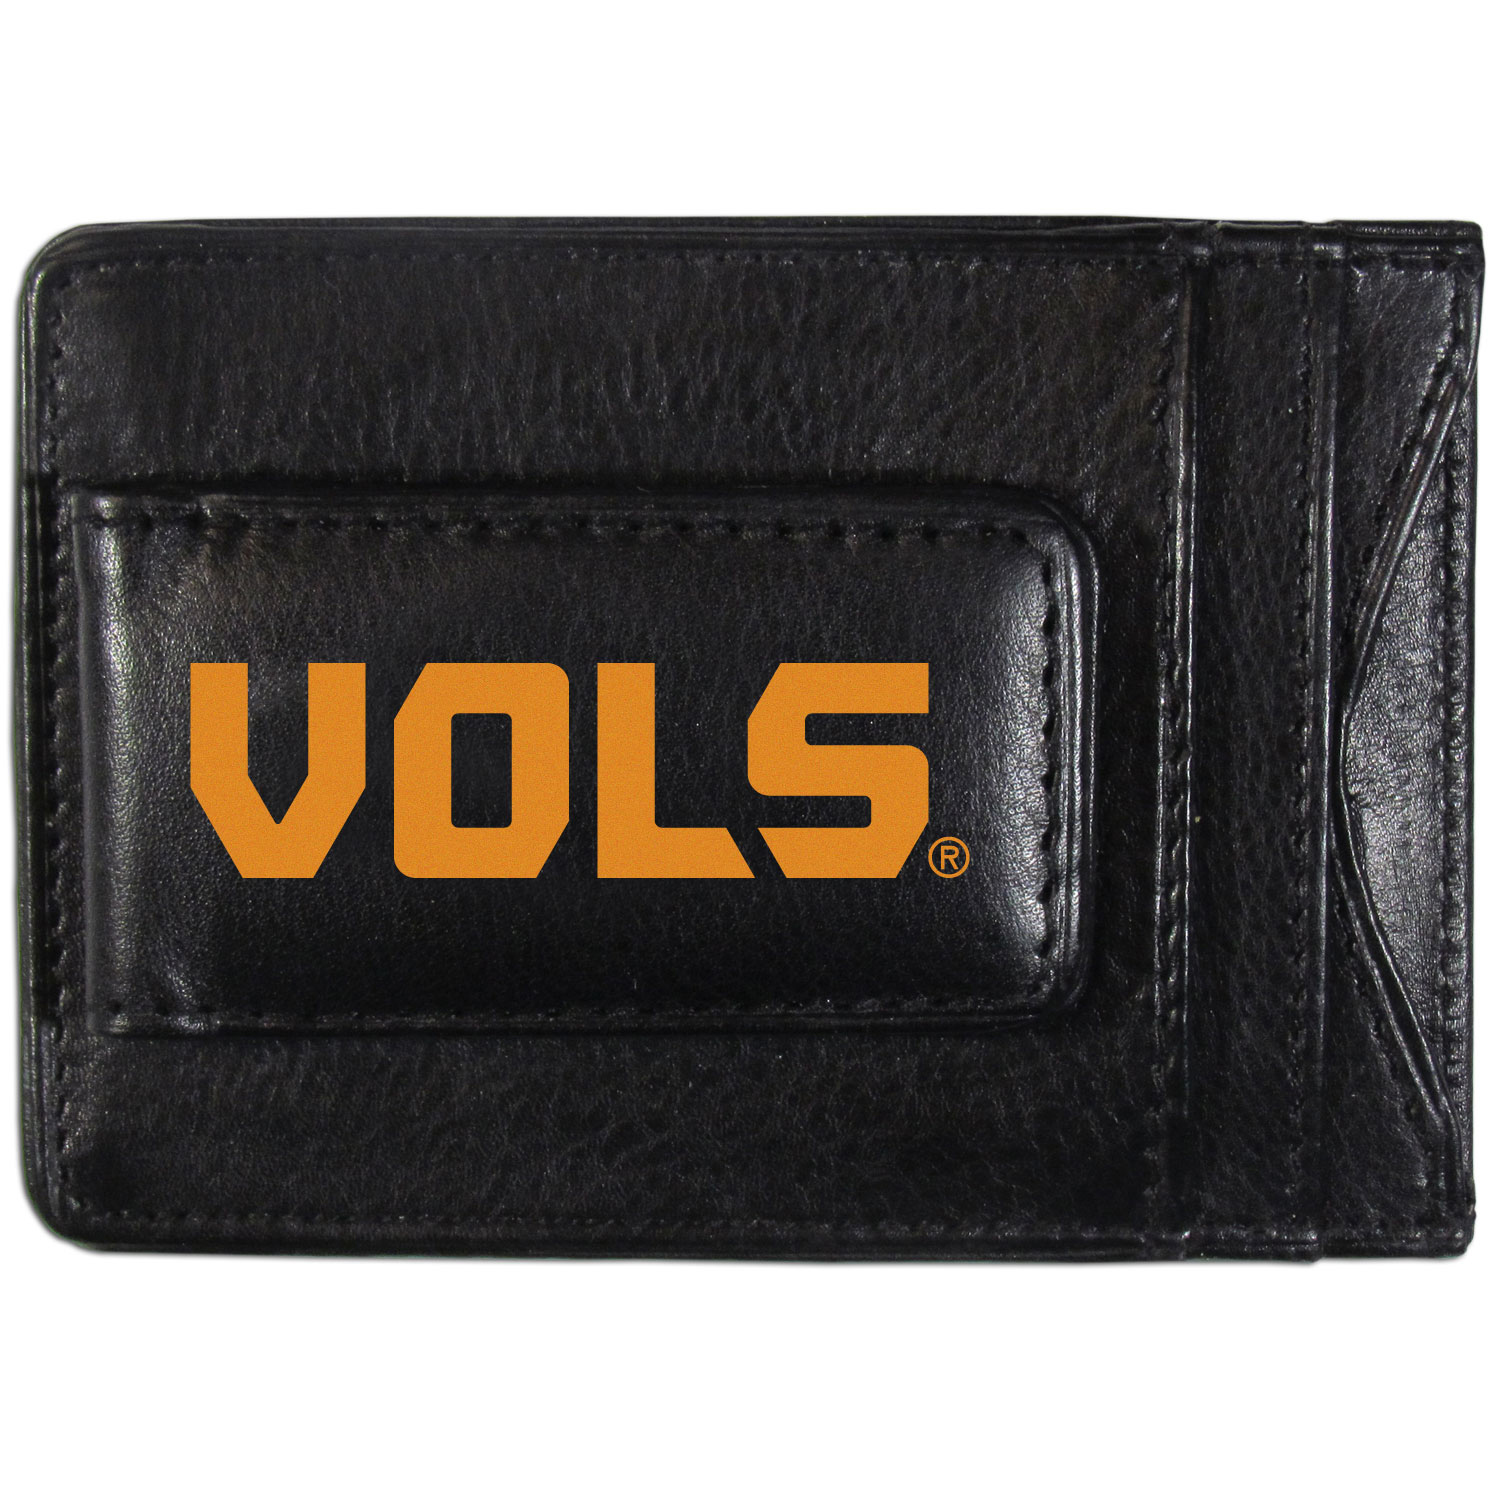 Tennessee Volunteers Logo Leather Cash and Cardholder - This super slim leather wallet lets you have all the benefits of a money clip while keeping the organization of a wallet. On one side of this front pocket wallet there is a strong, magnetic money clip to keep your cash easily accessible and the?Tennessee Volunteers team logo on the front. The versatile men's accessory is a perfect addition to your fan apparel.